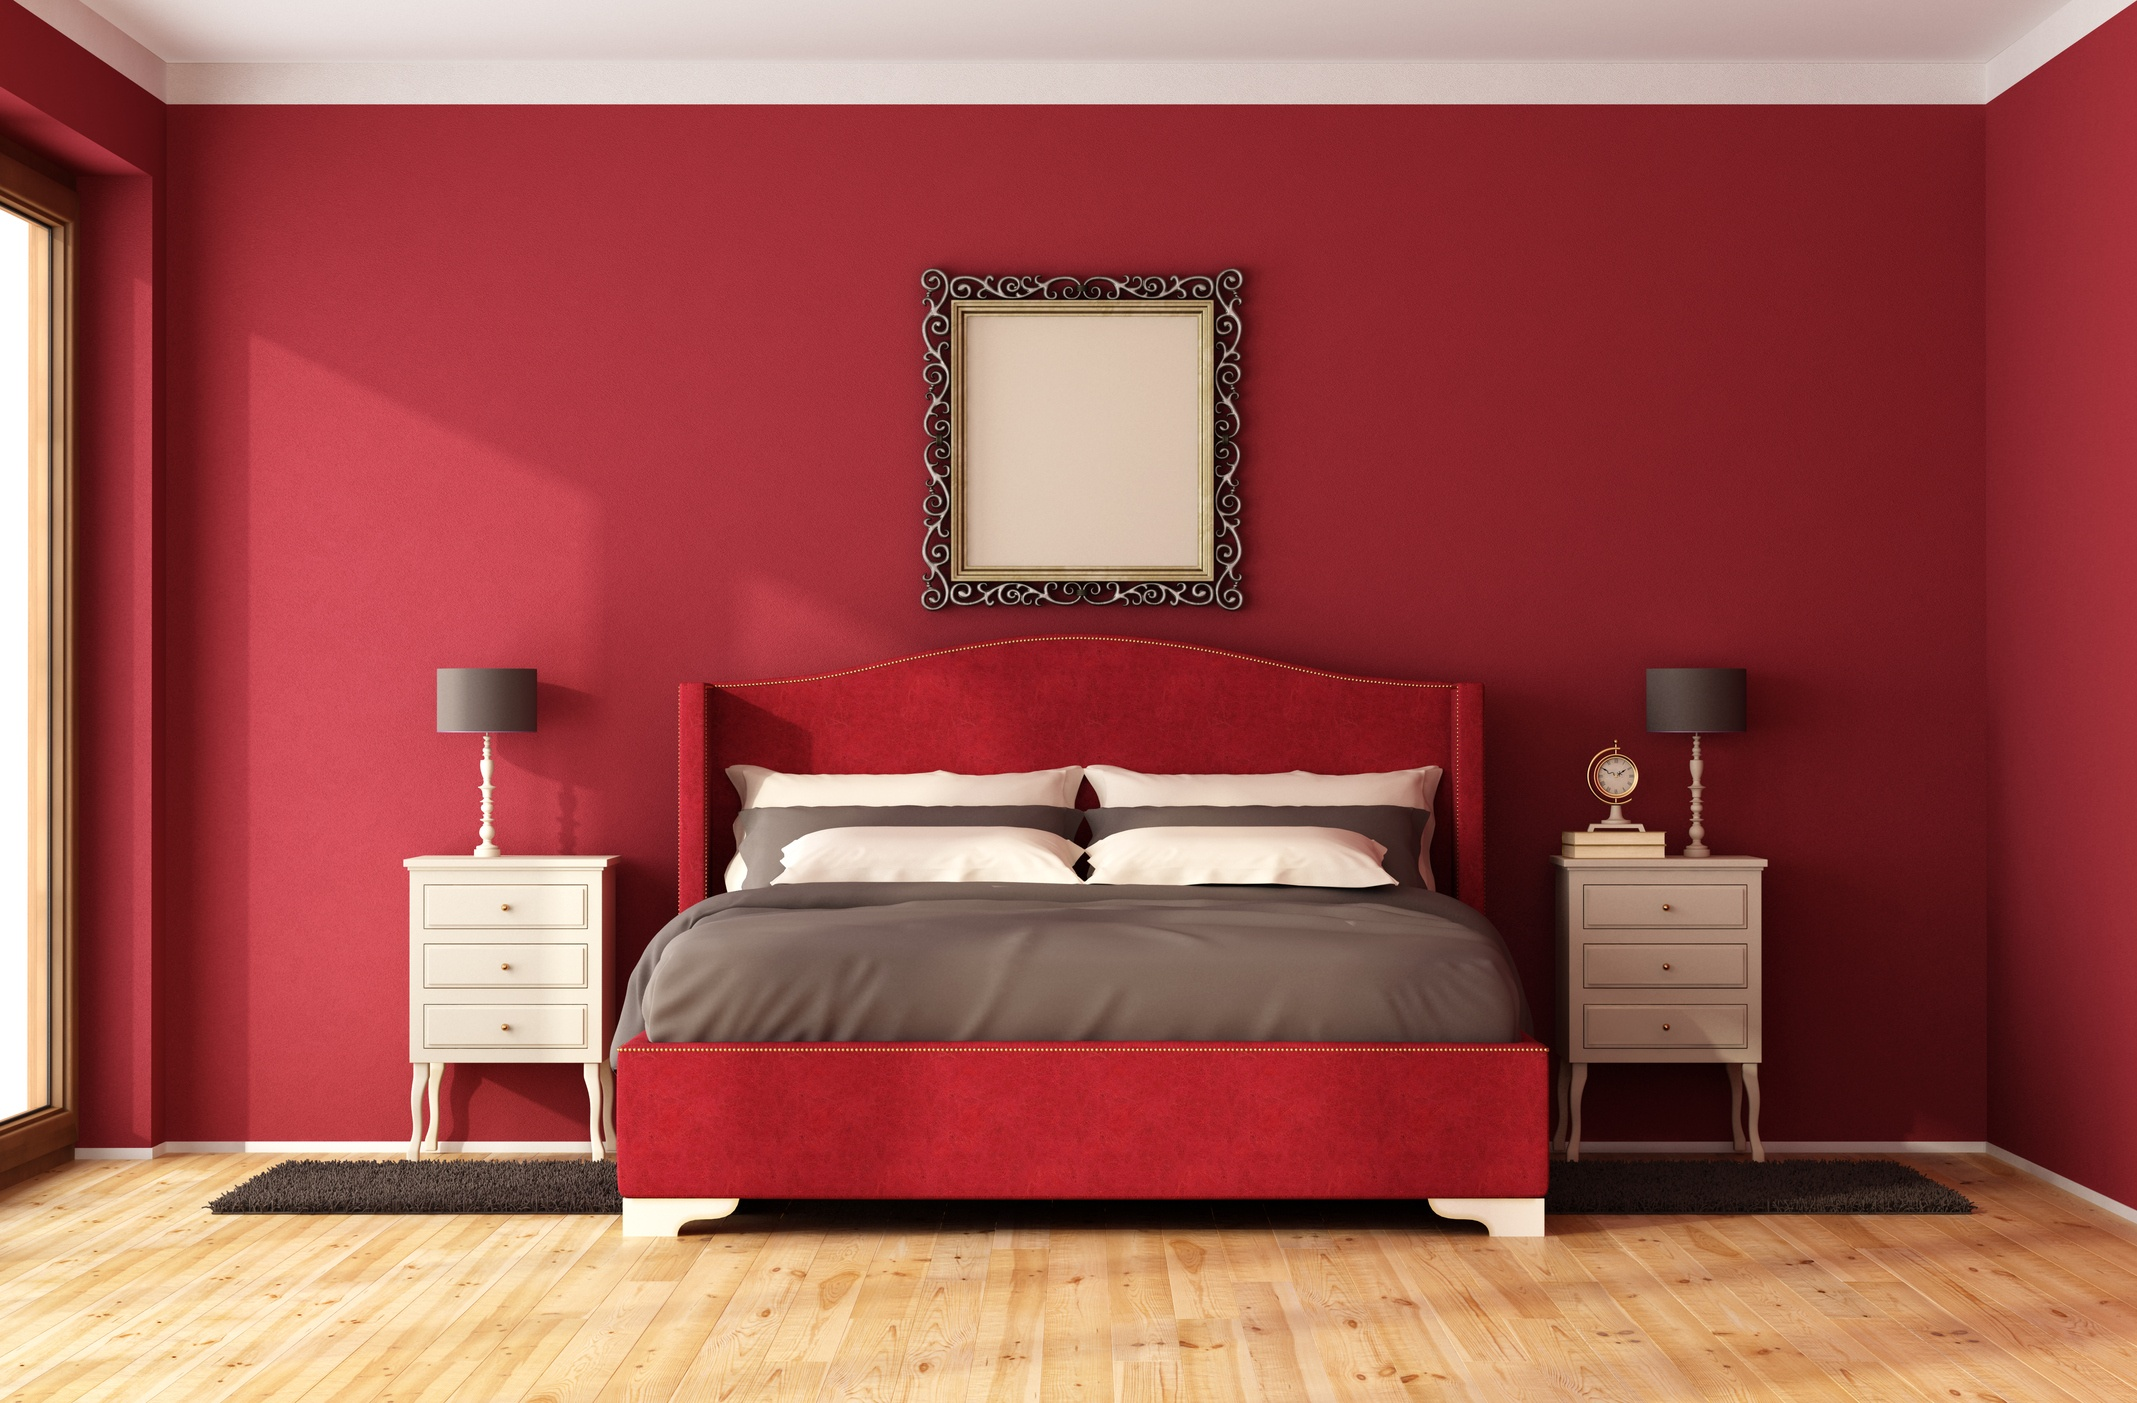 These are the worst paint colors you should never use in small spaces - Parete rossa camera da letto ...